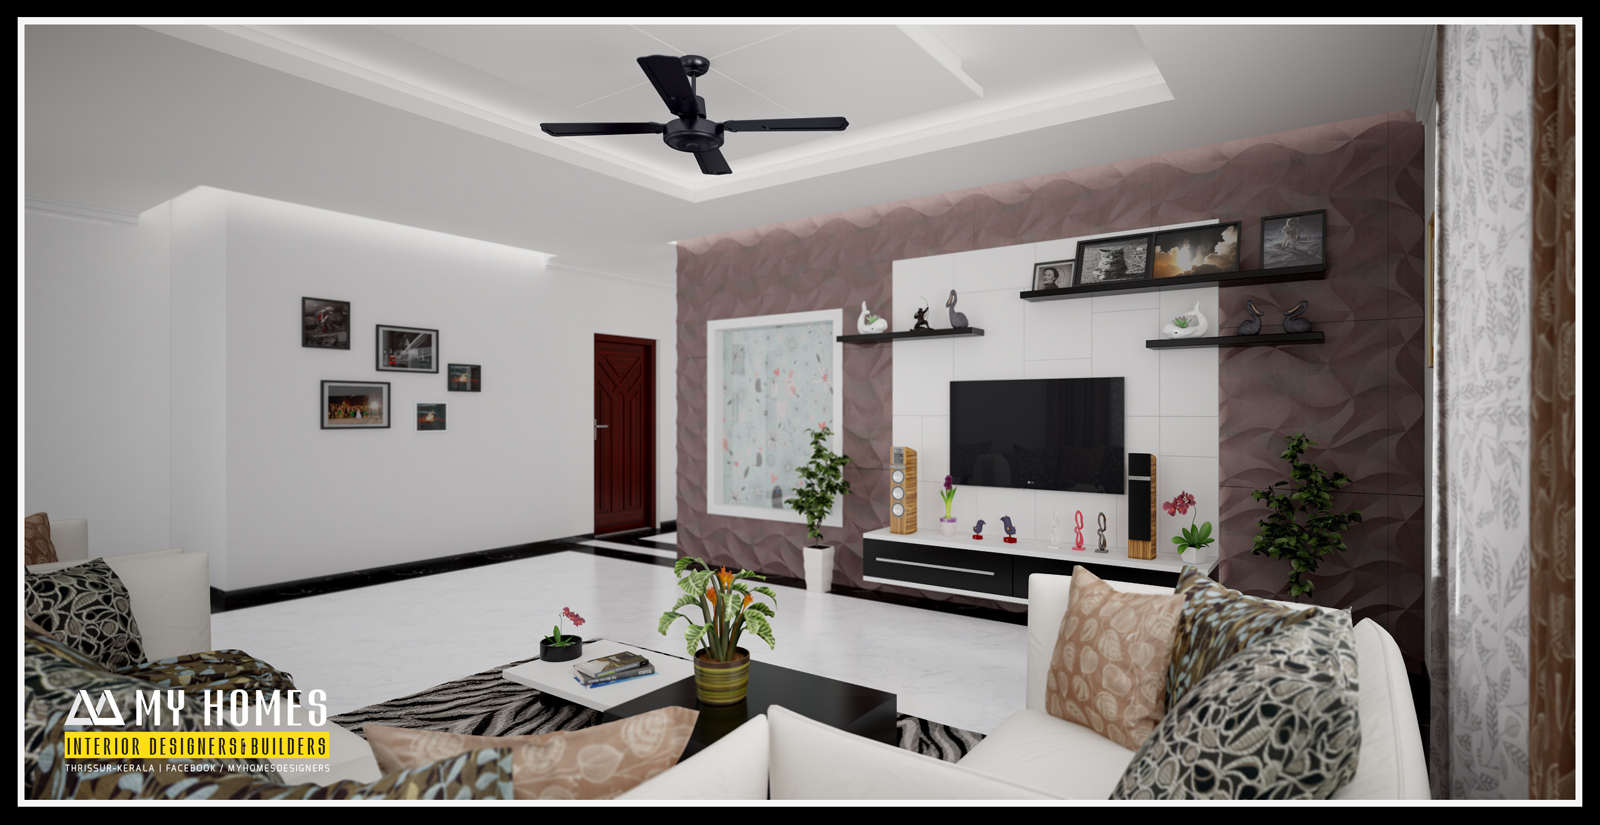 Kerala interior design ideas for homes house design in india - Interior design living room styles ...